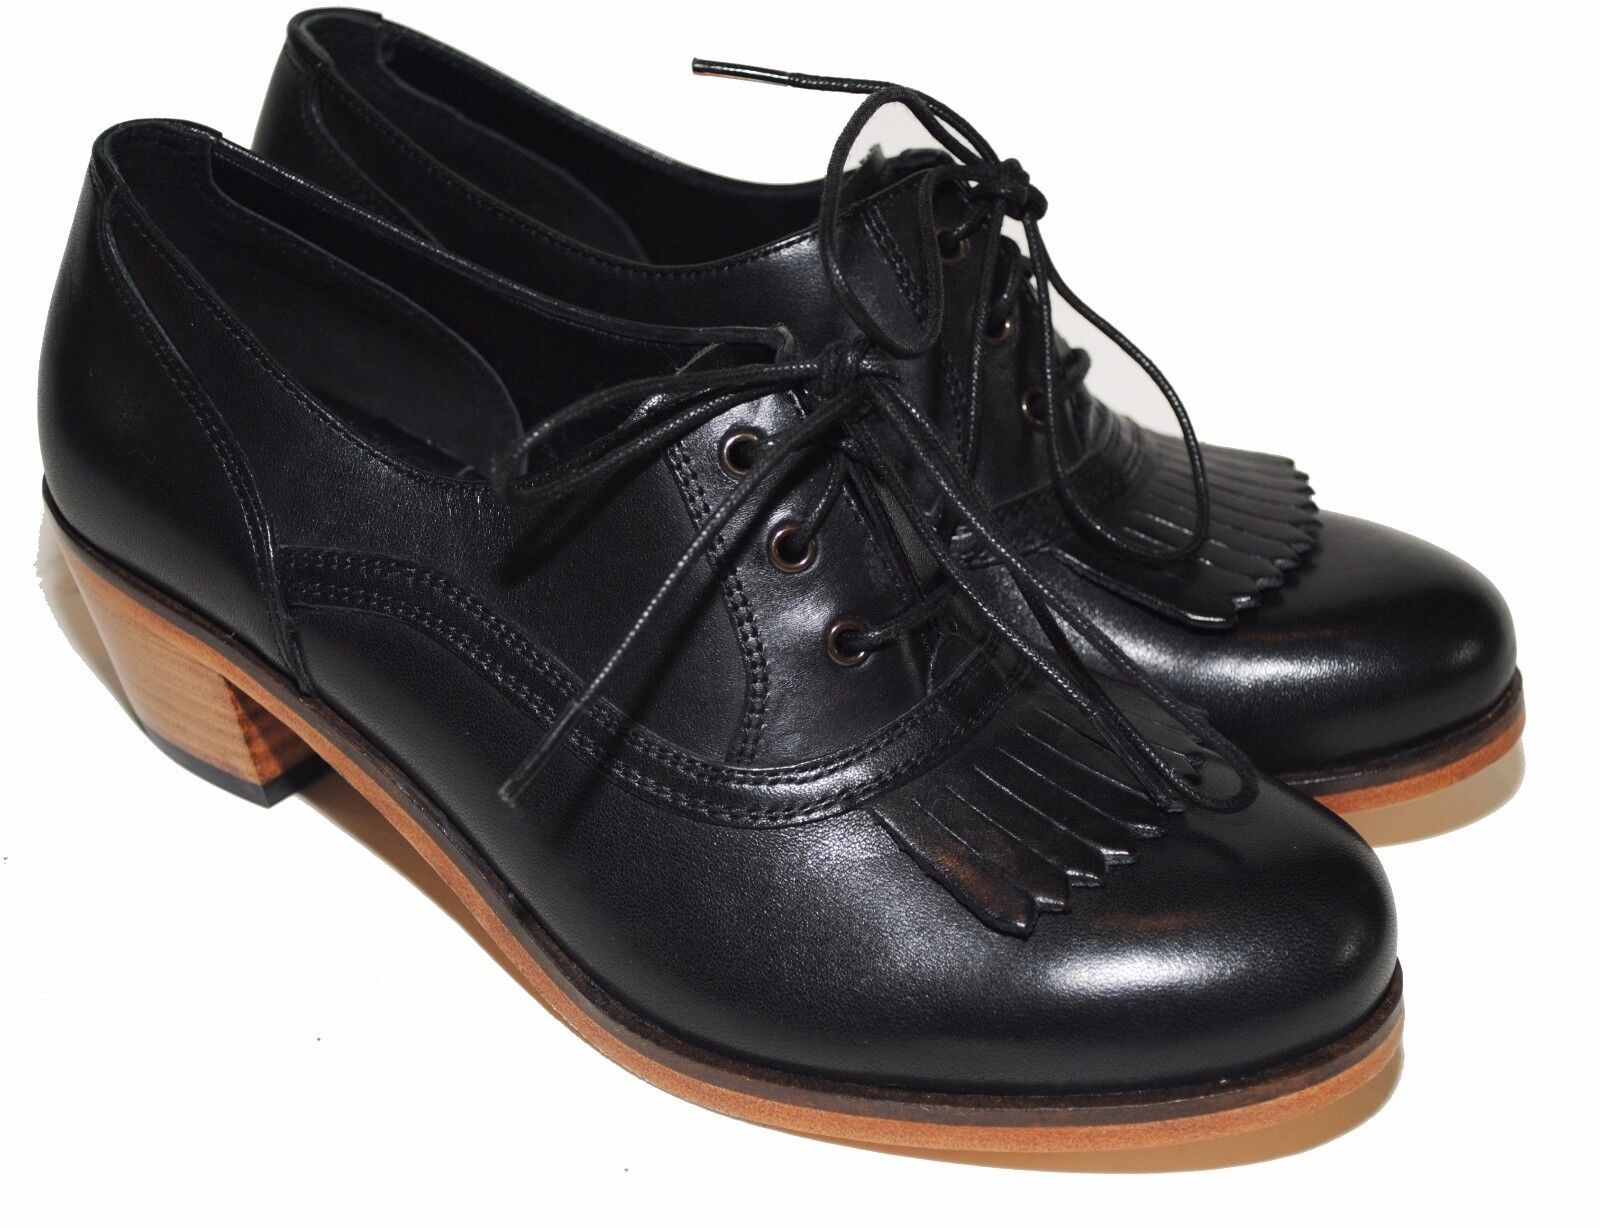 NEW Wolverine 1000 Mile Nesbit Kiltie Oxfords W00802 Black Leather Women's 5.5